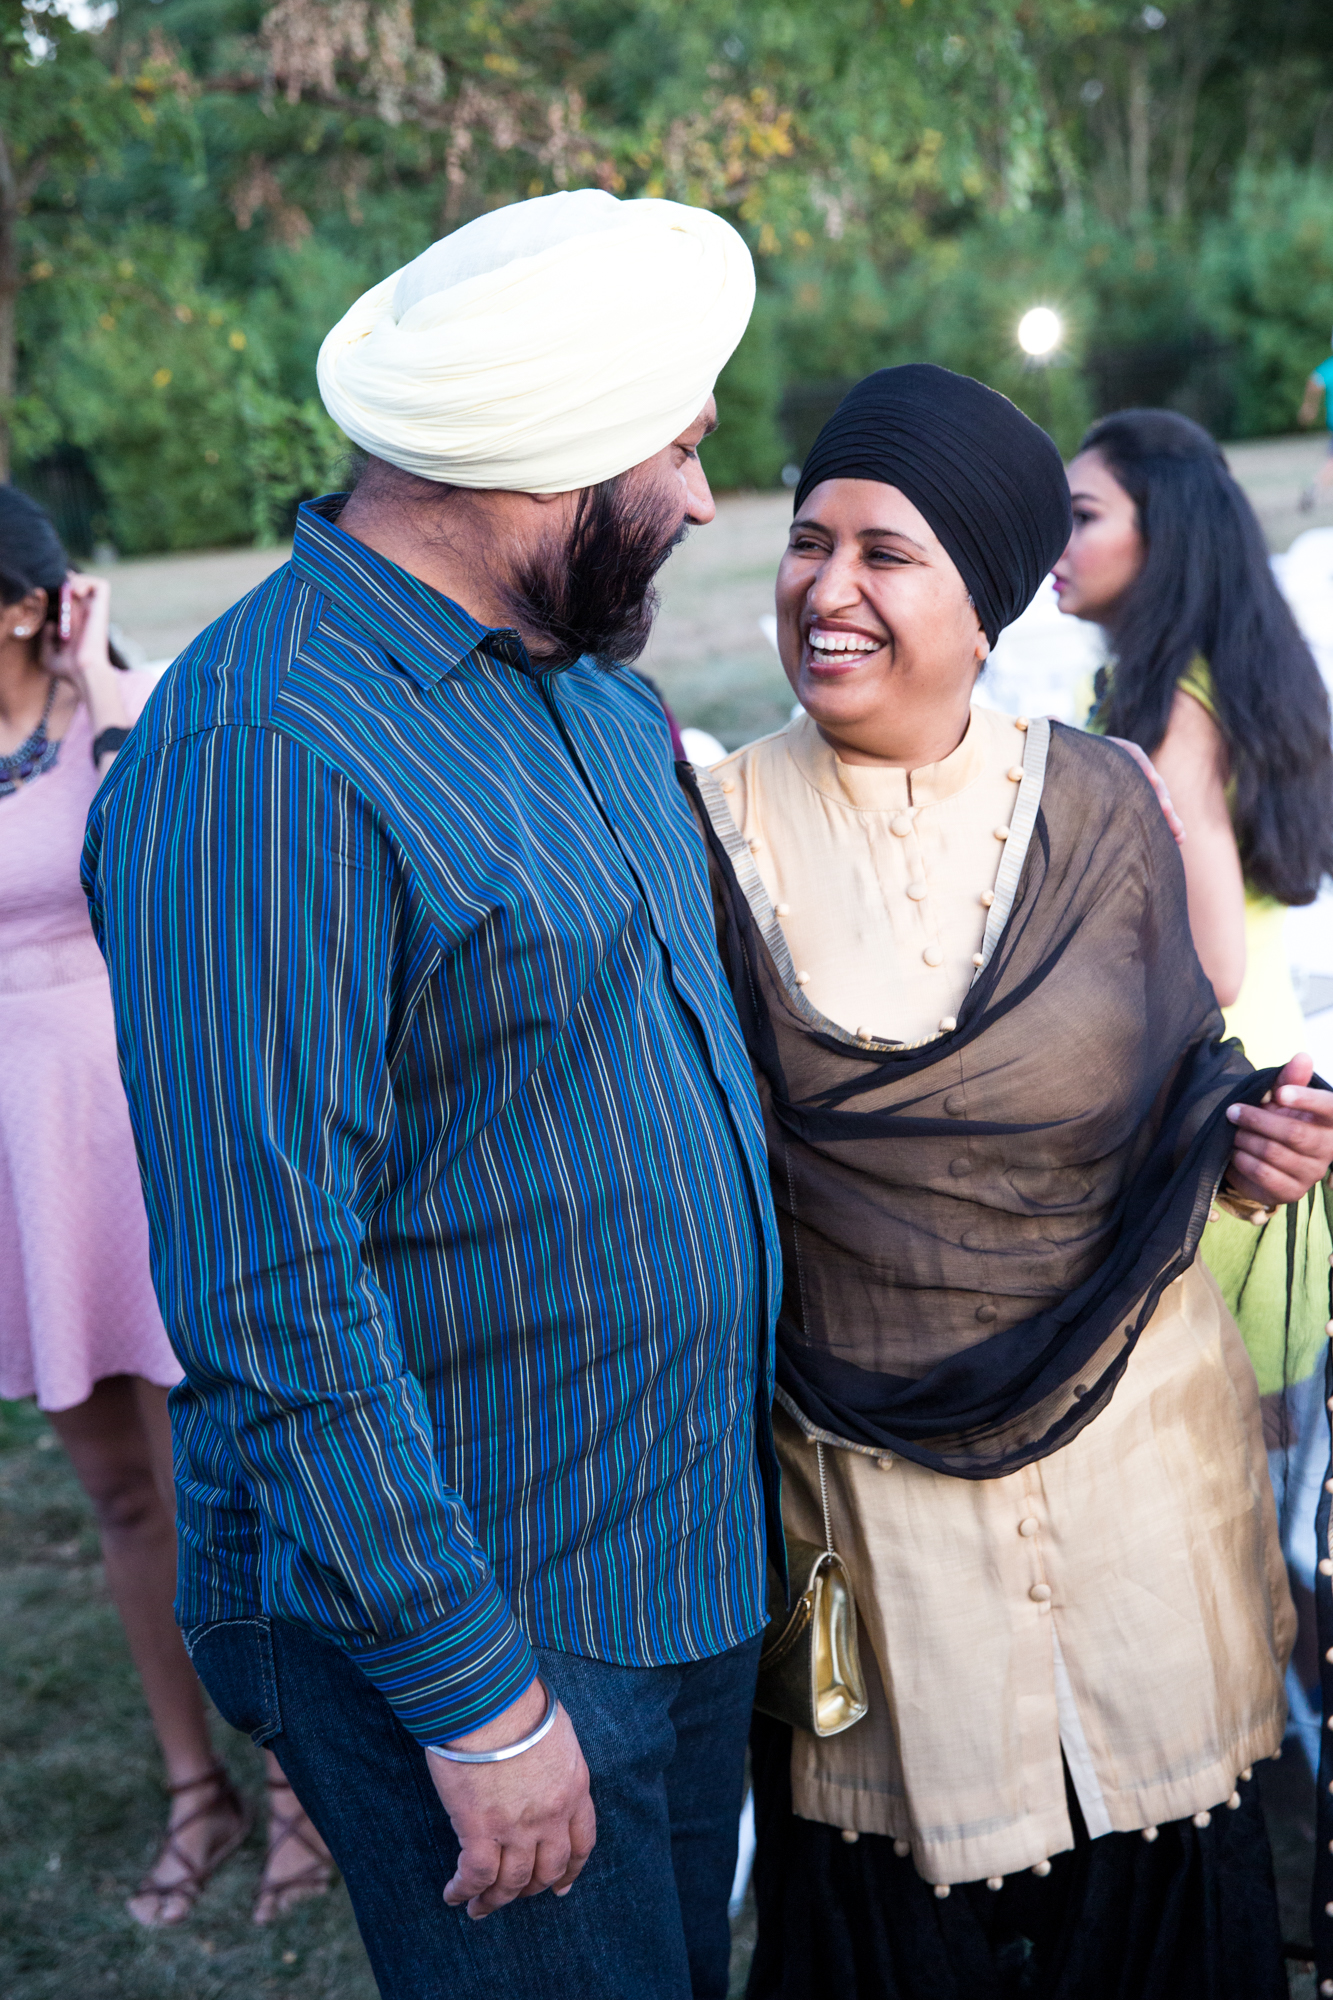 24-William Hendra Photography Singh Graduation Party.jpg